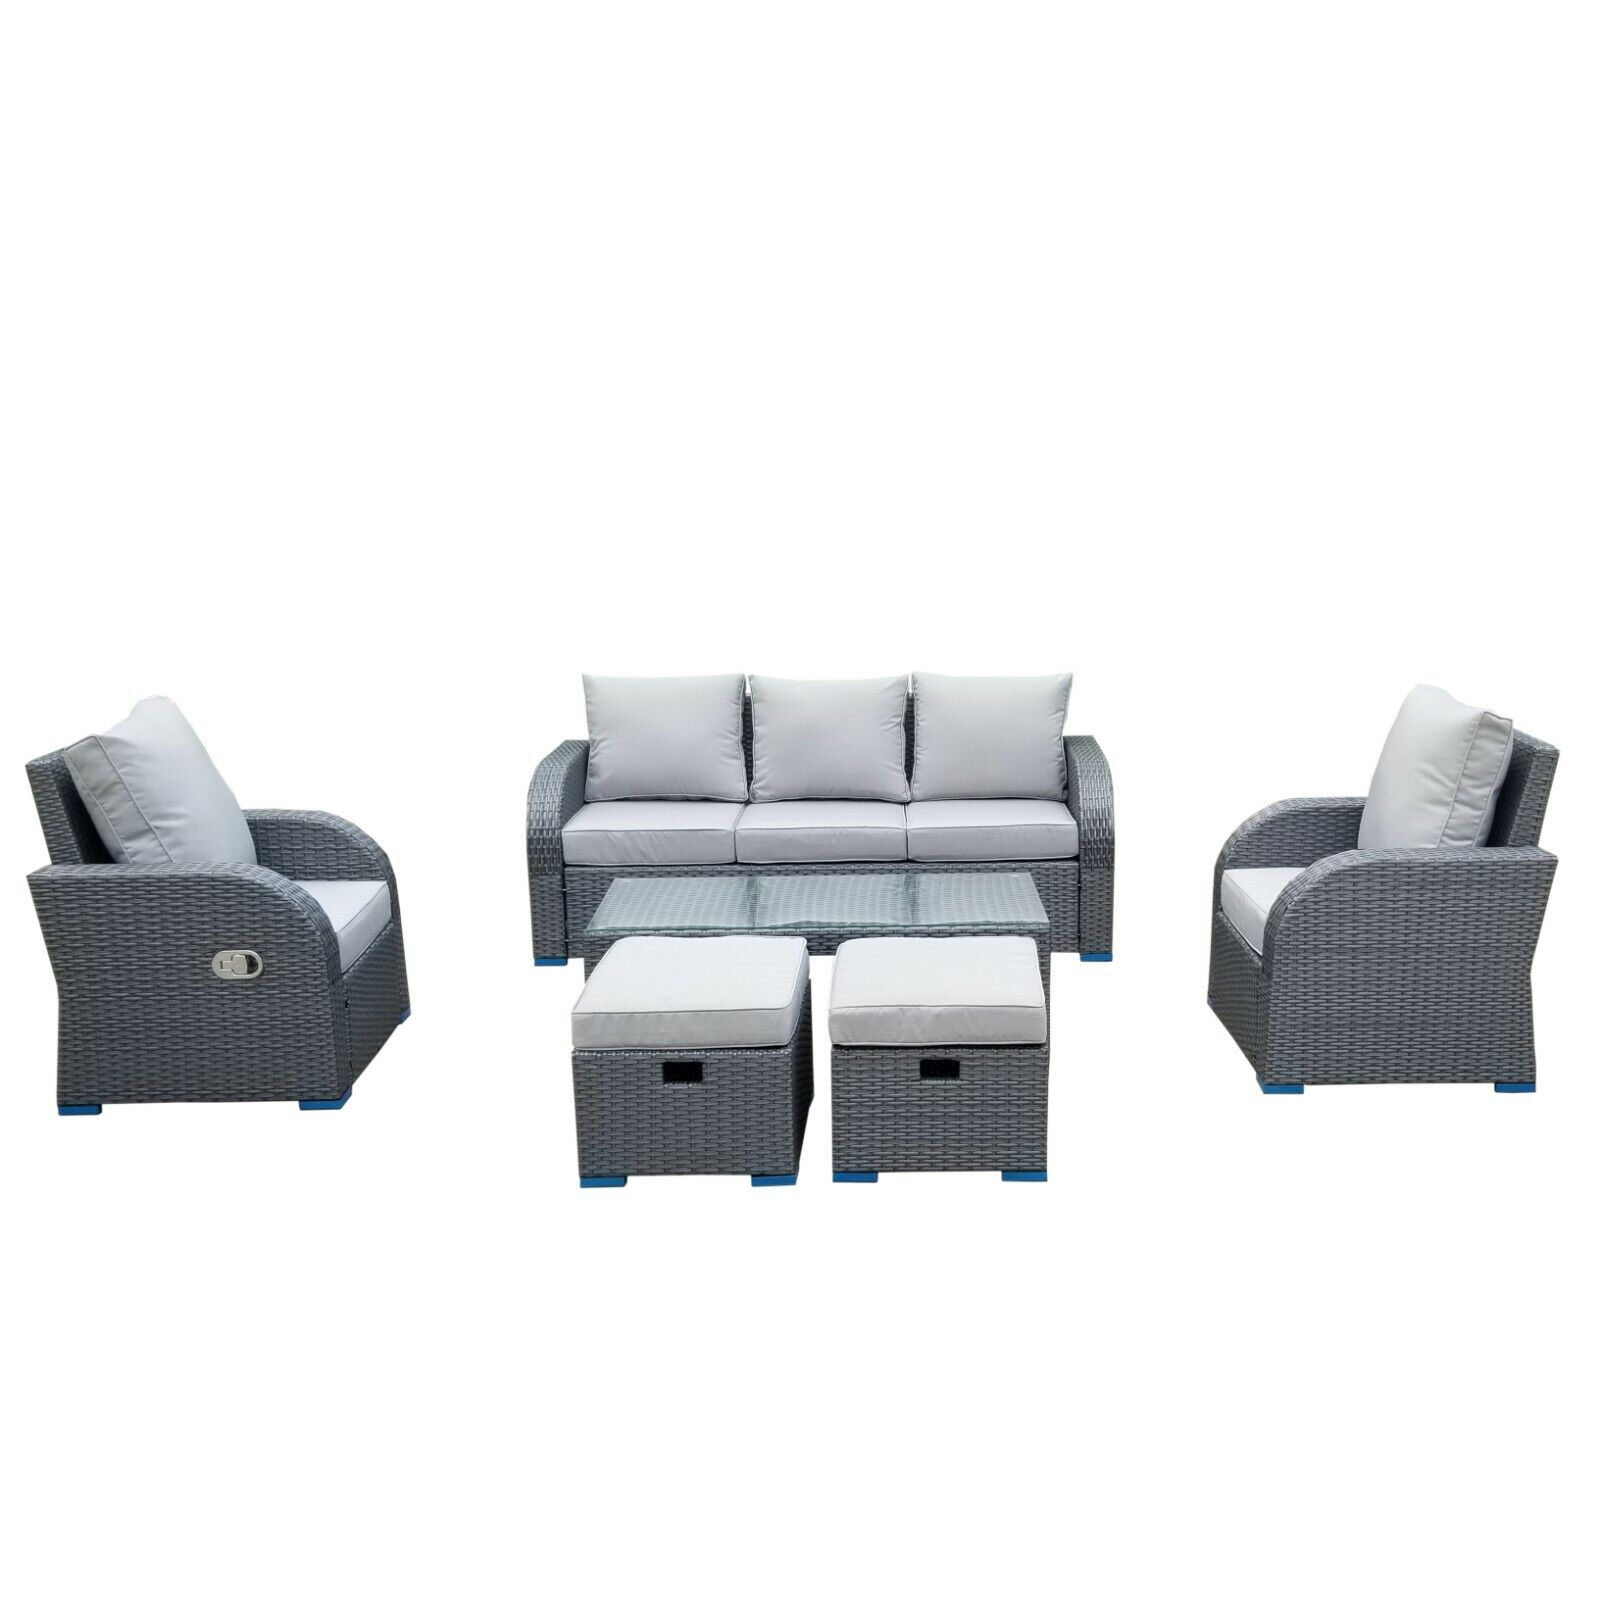 Garden Furniture - Grey Outdoor Rattan Garden Furniture Patio Sofa Chair Set Conservatory.